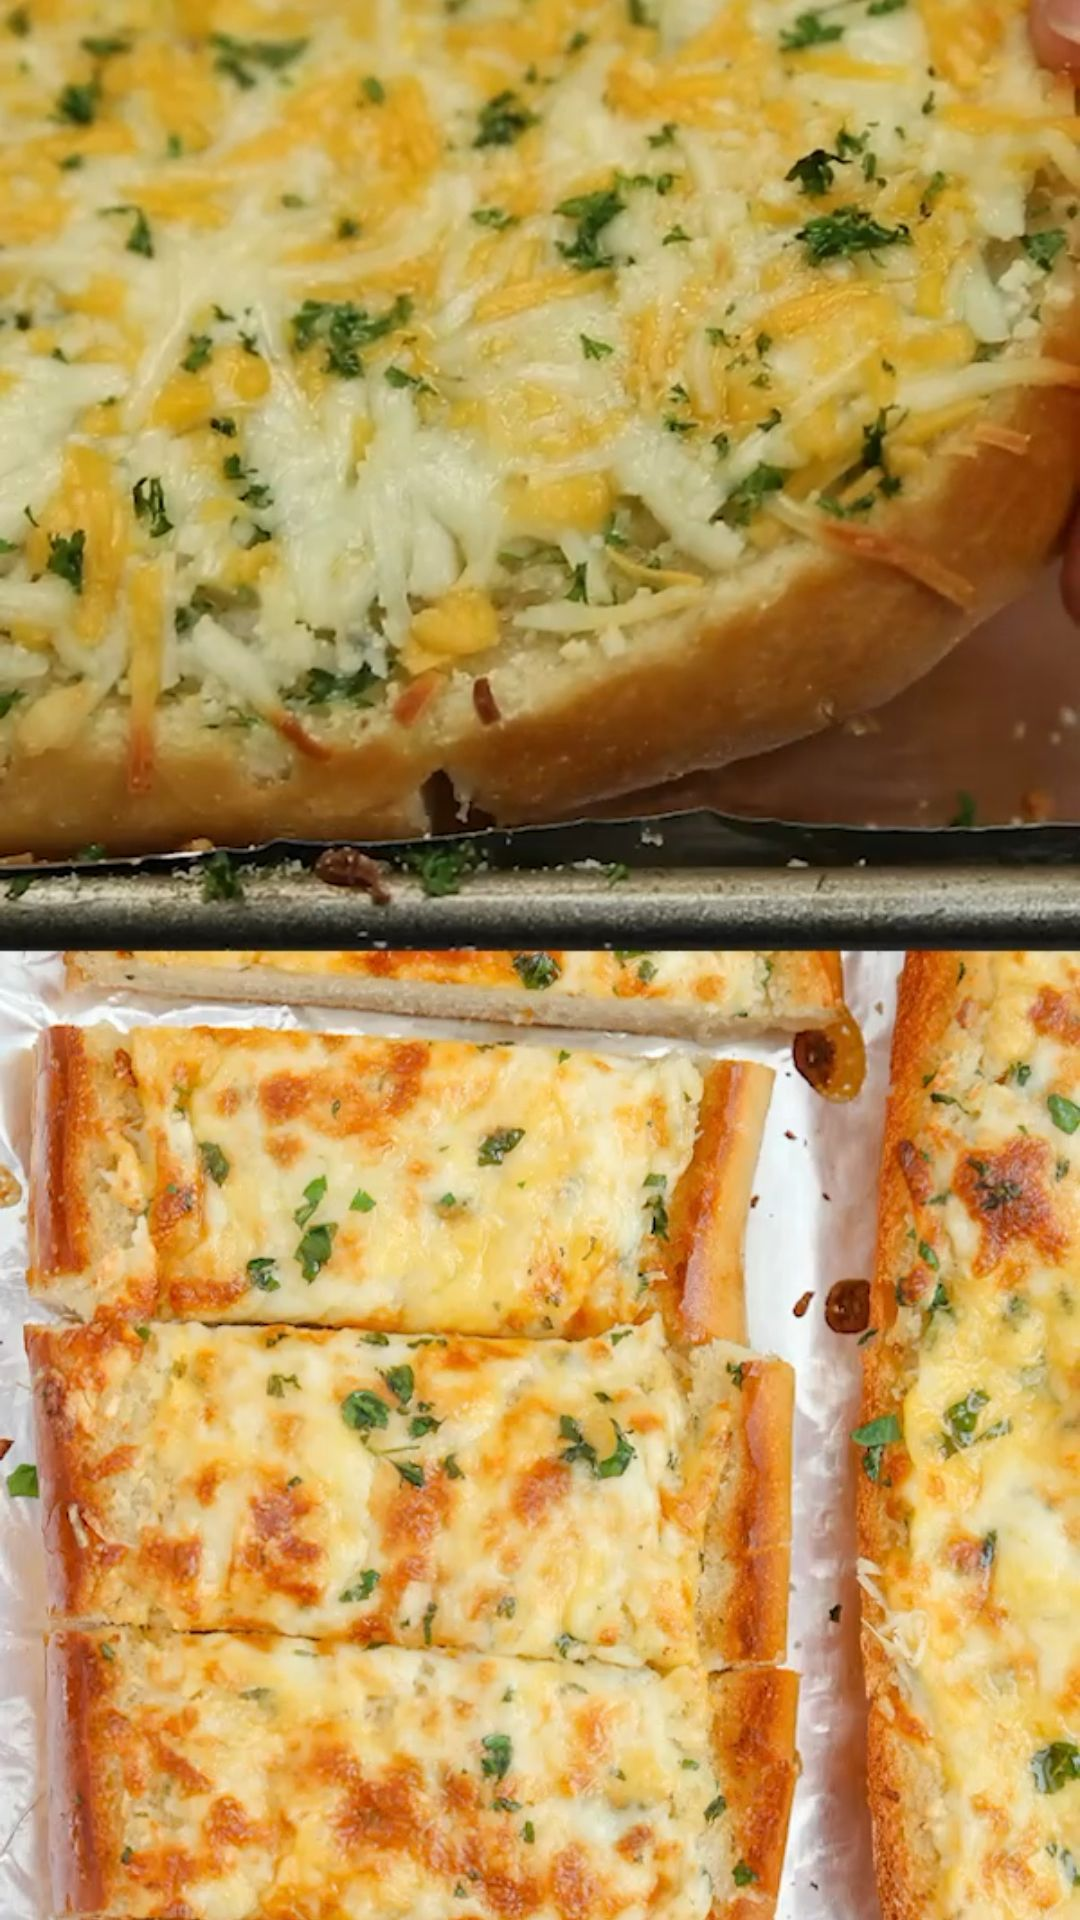 Cheesy Garlic Bread.